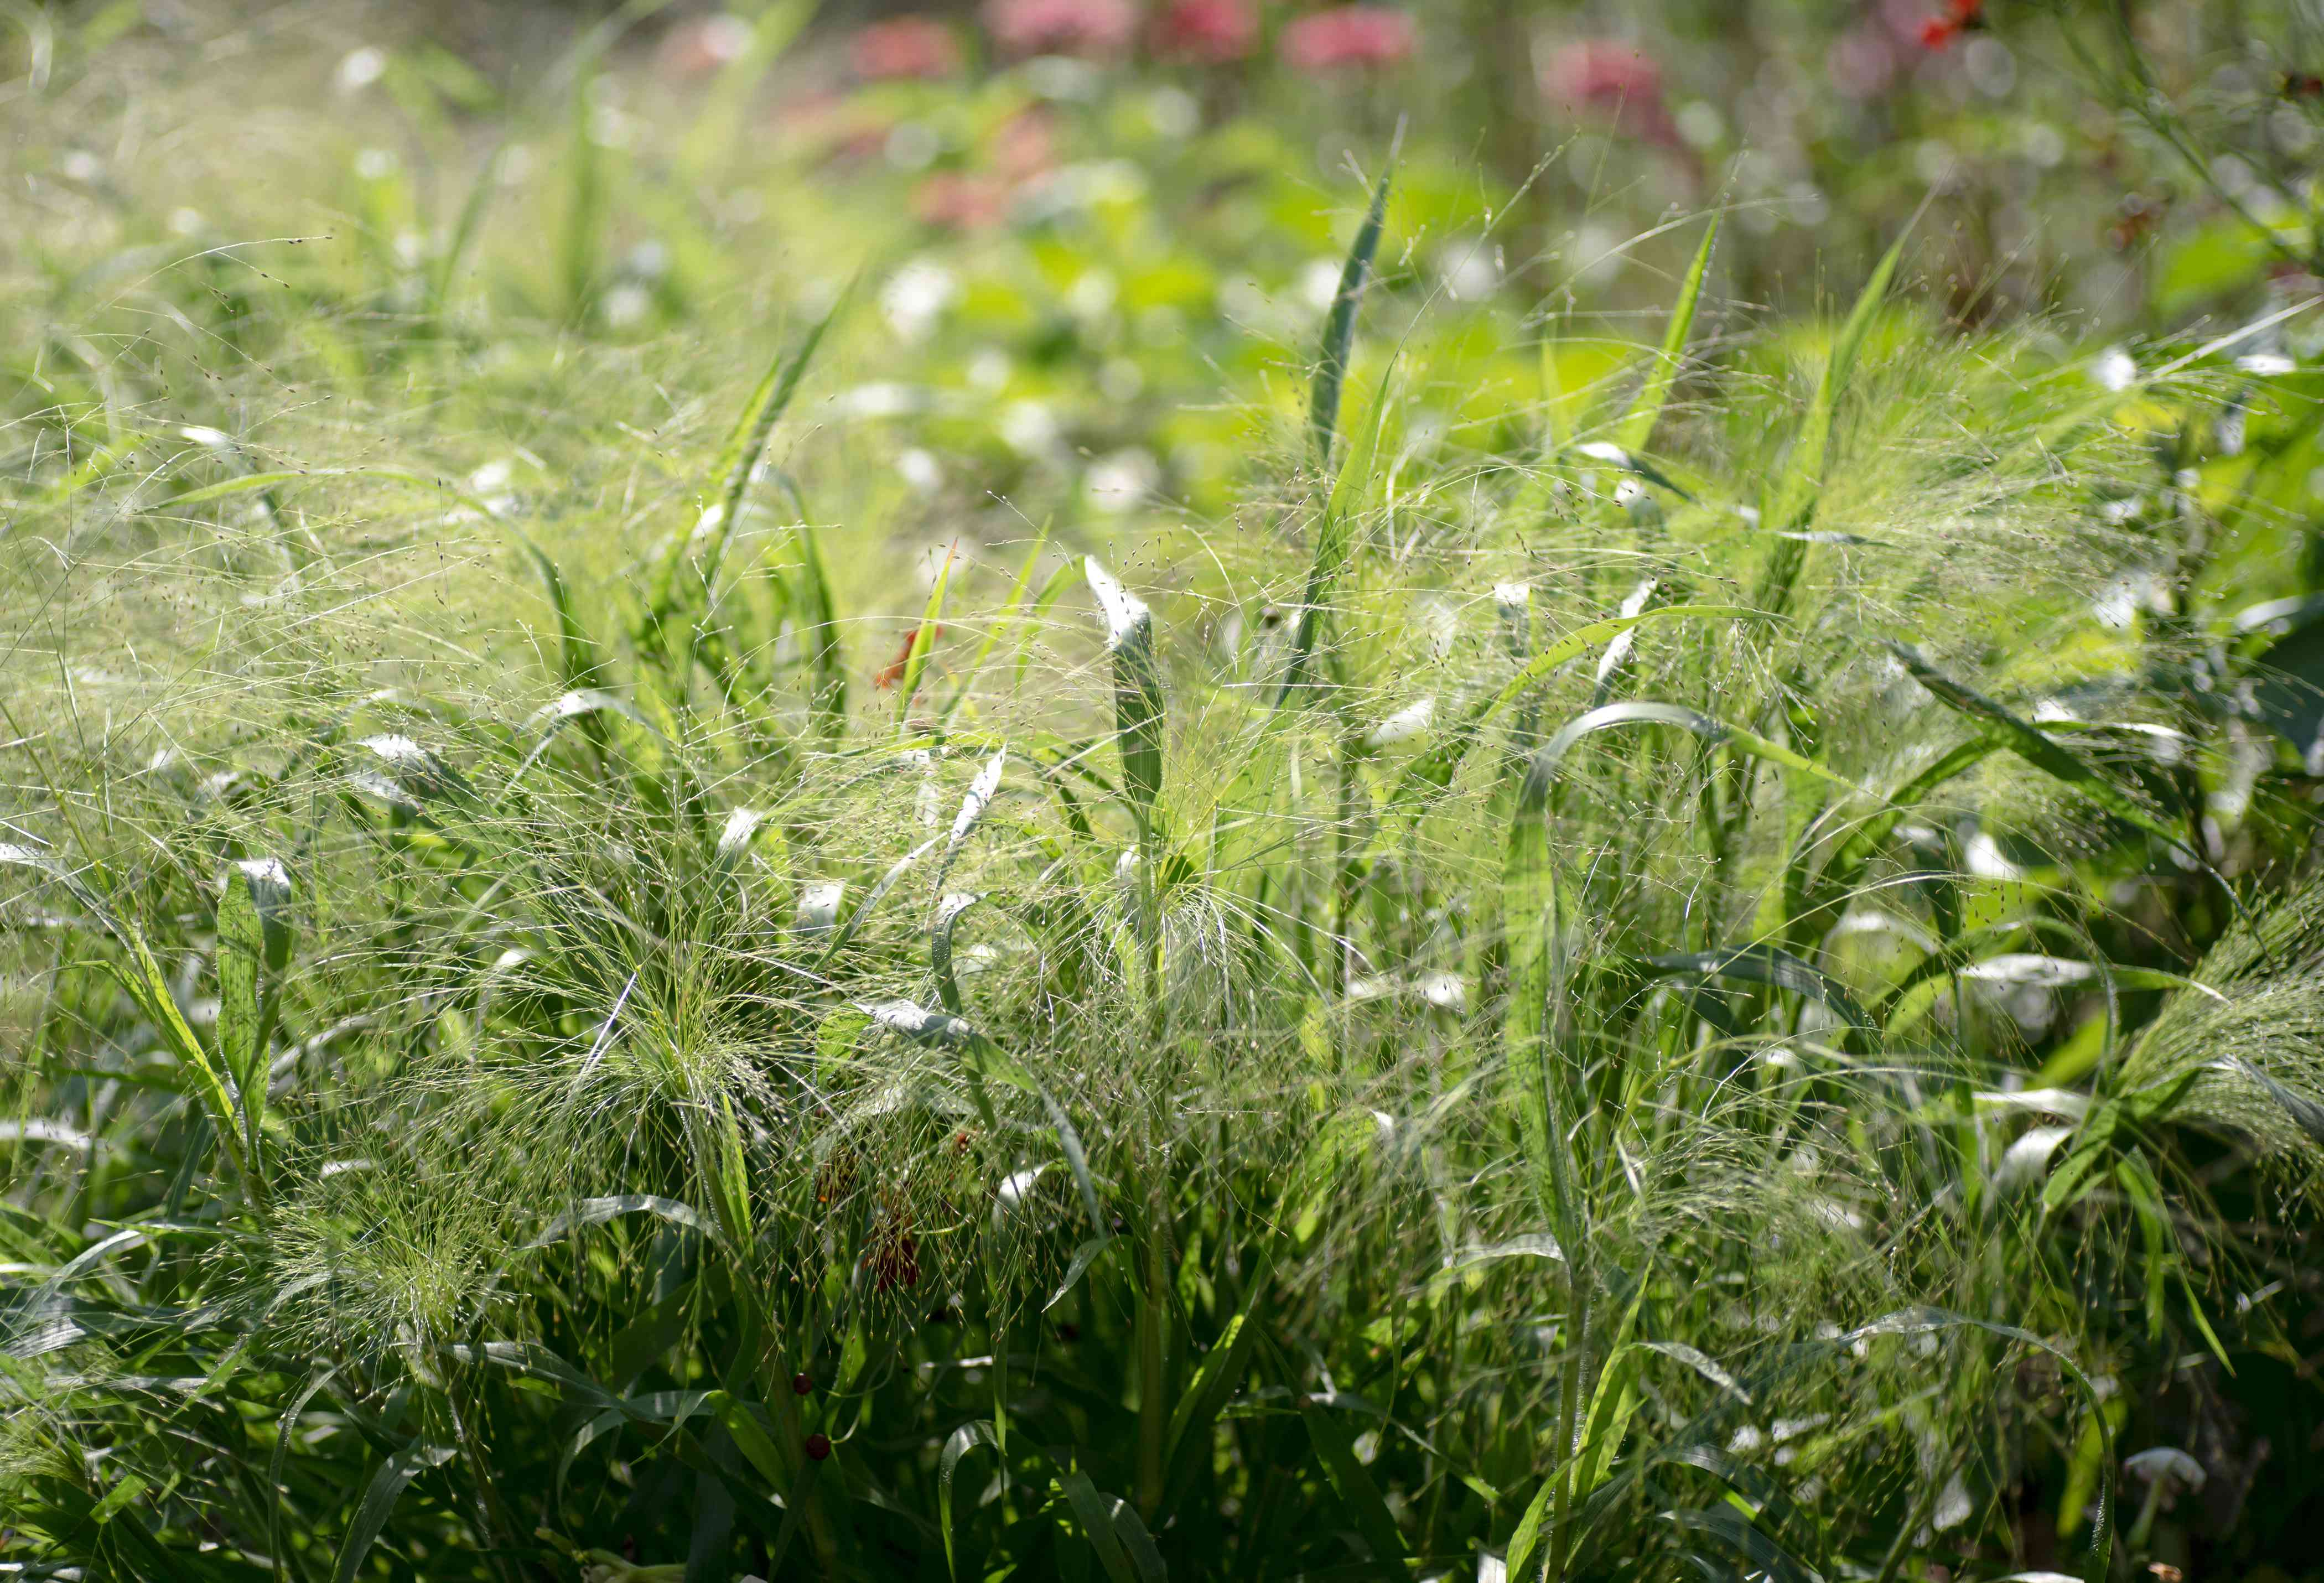 Switchgrass with green foliage and thin feathery plumes